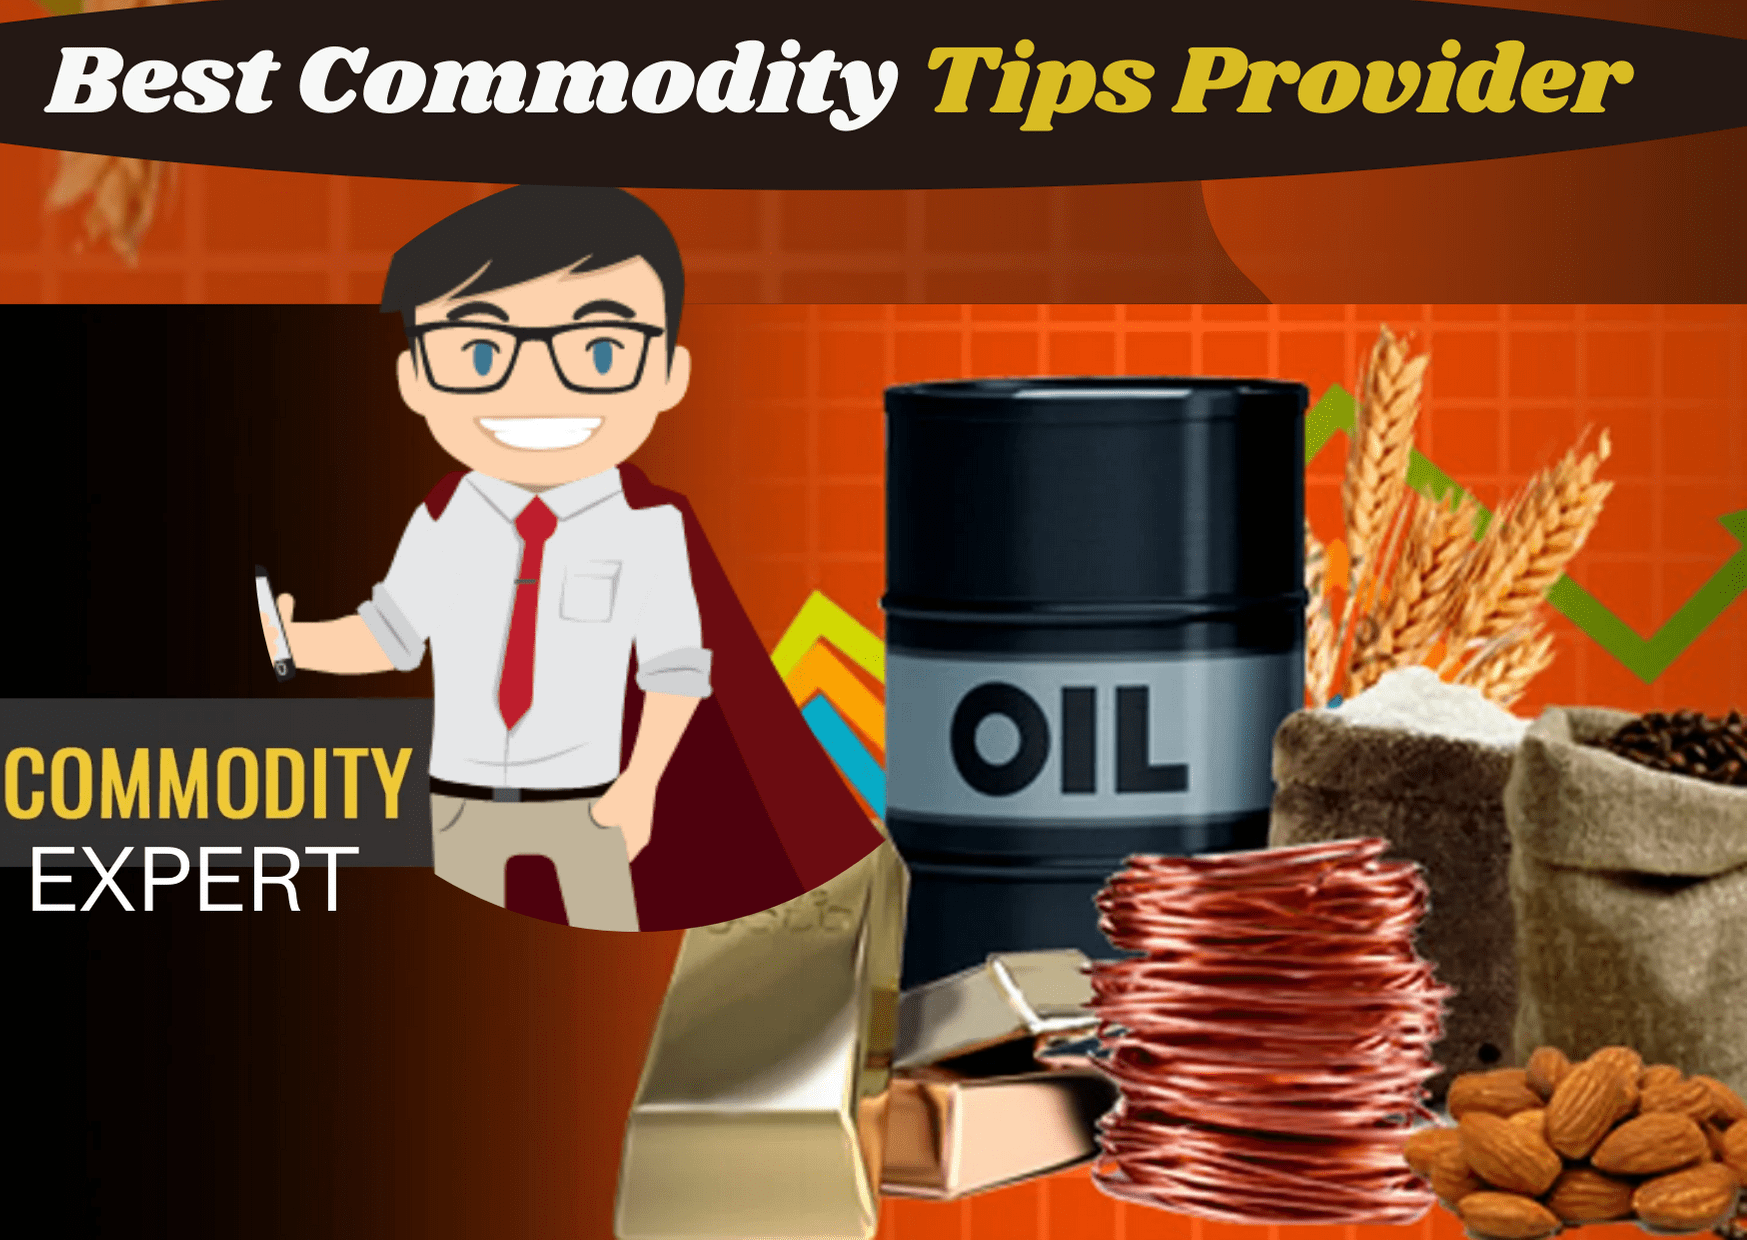 Mcx free tips today, accurate commodity tips provider